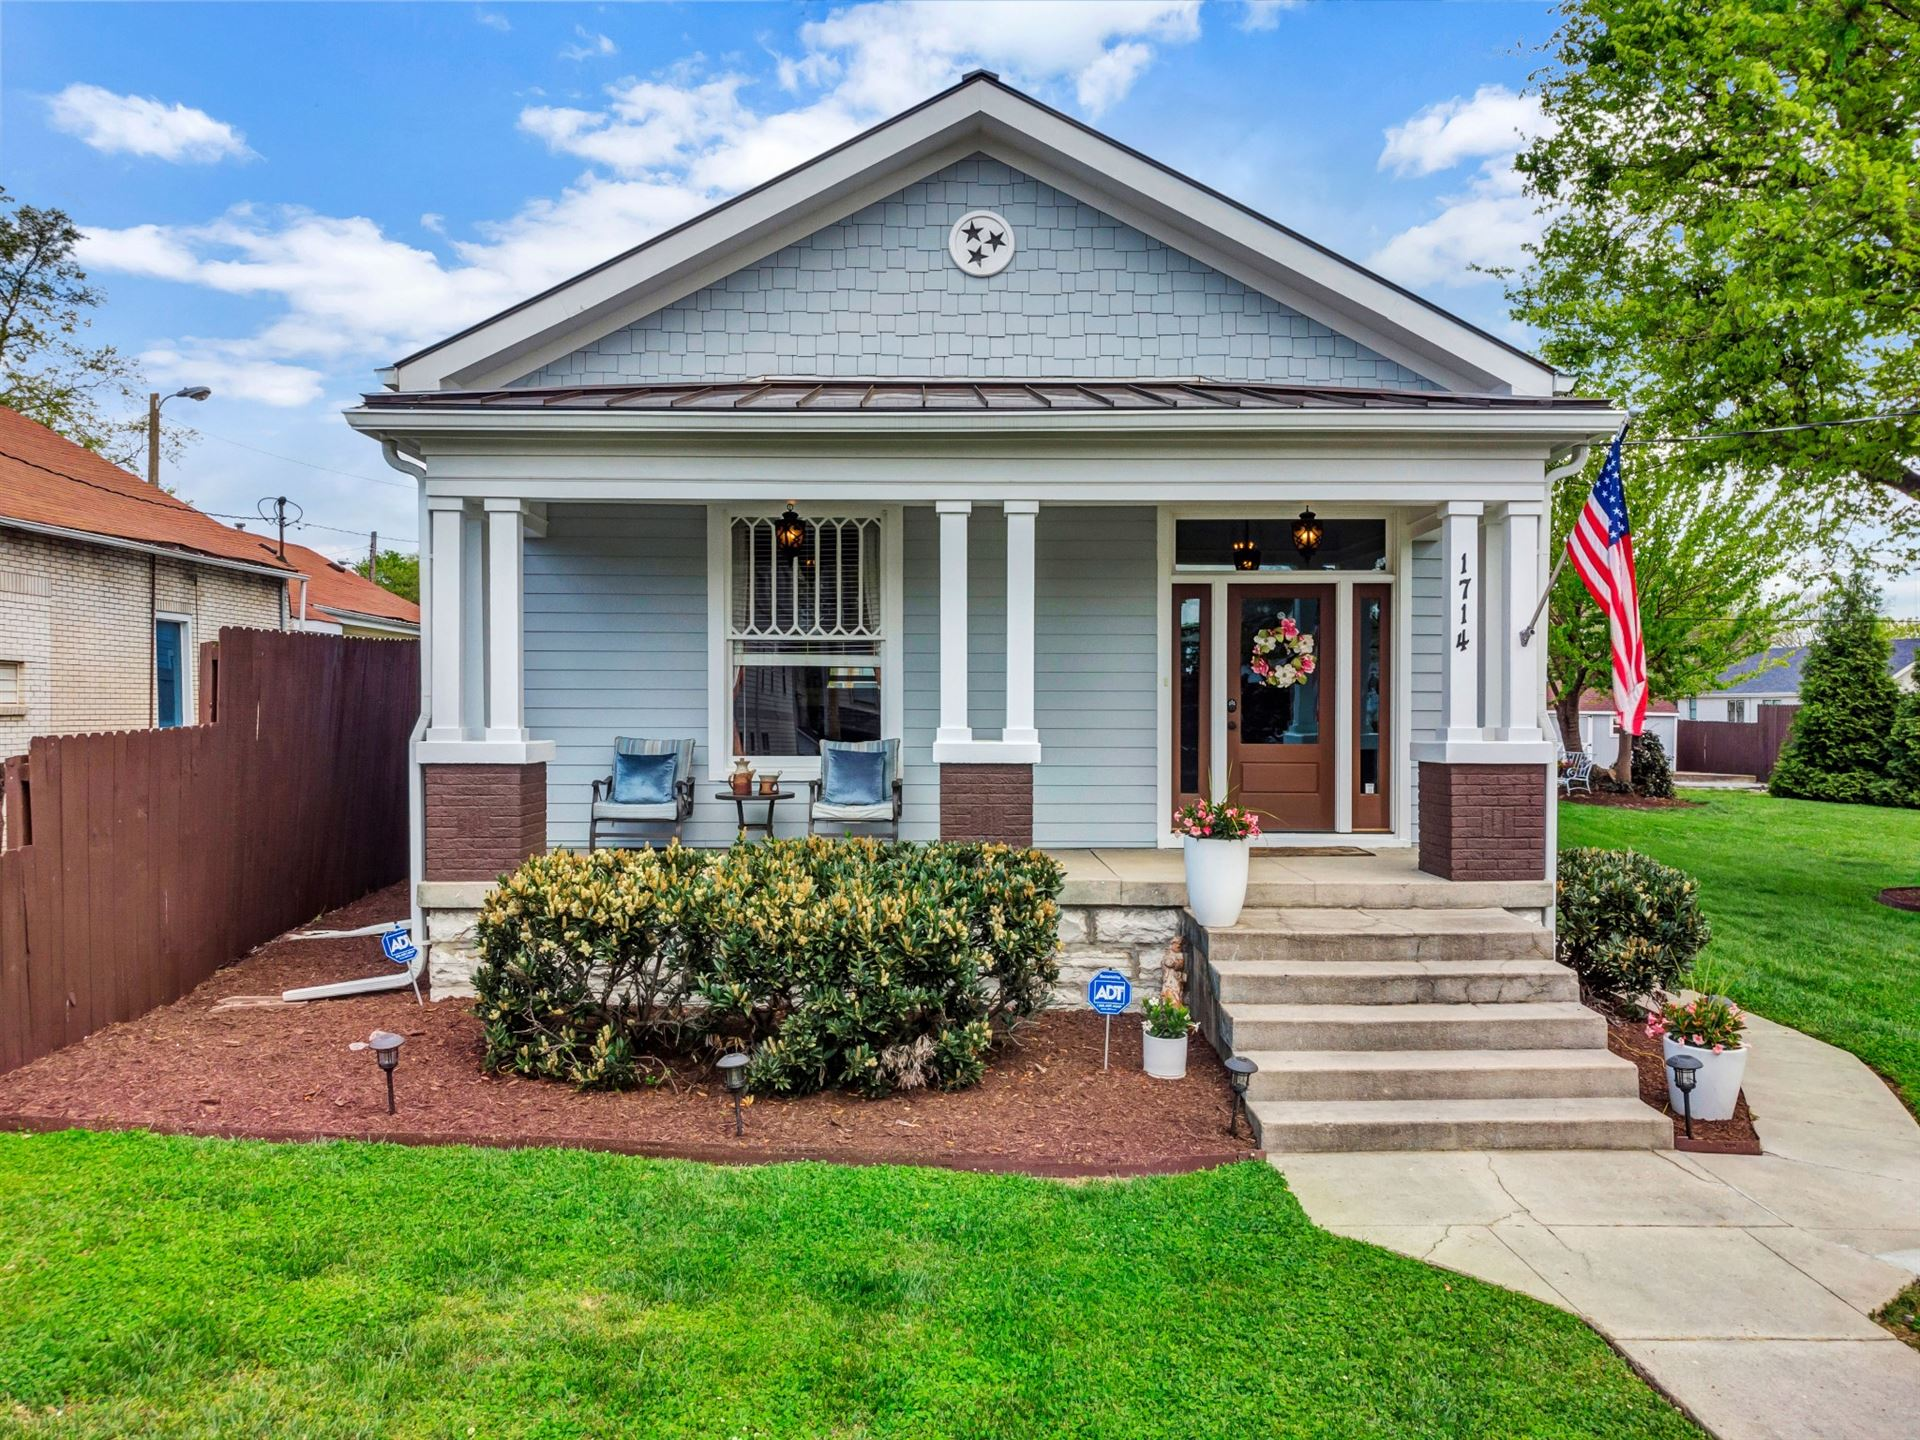 1714 5th Ave N, Nashville, TN 37208 - MLS#: 2249256